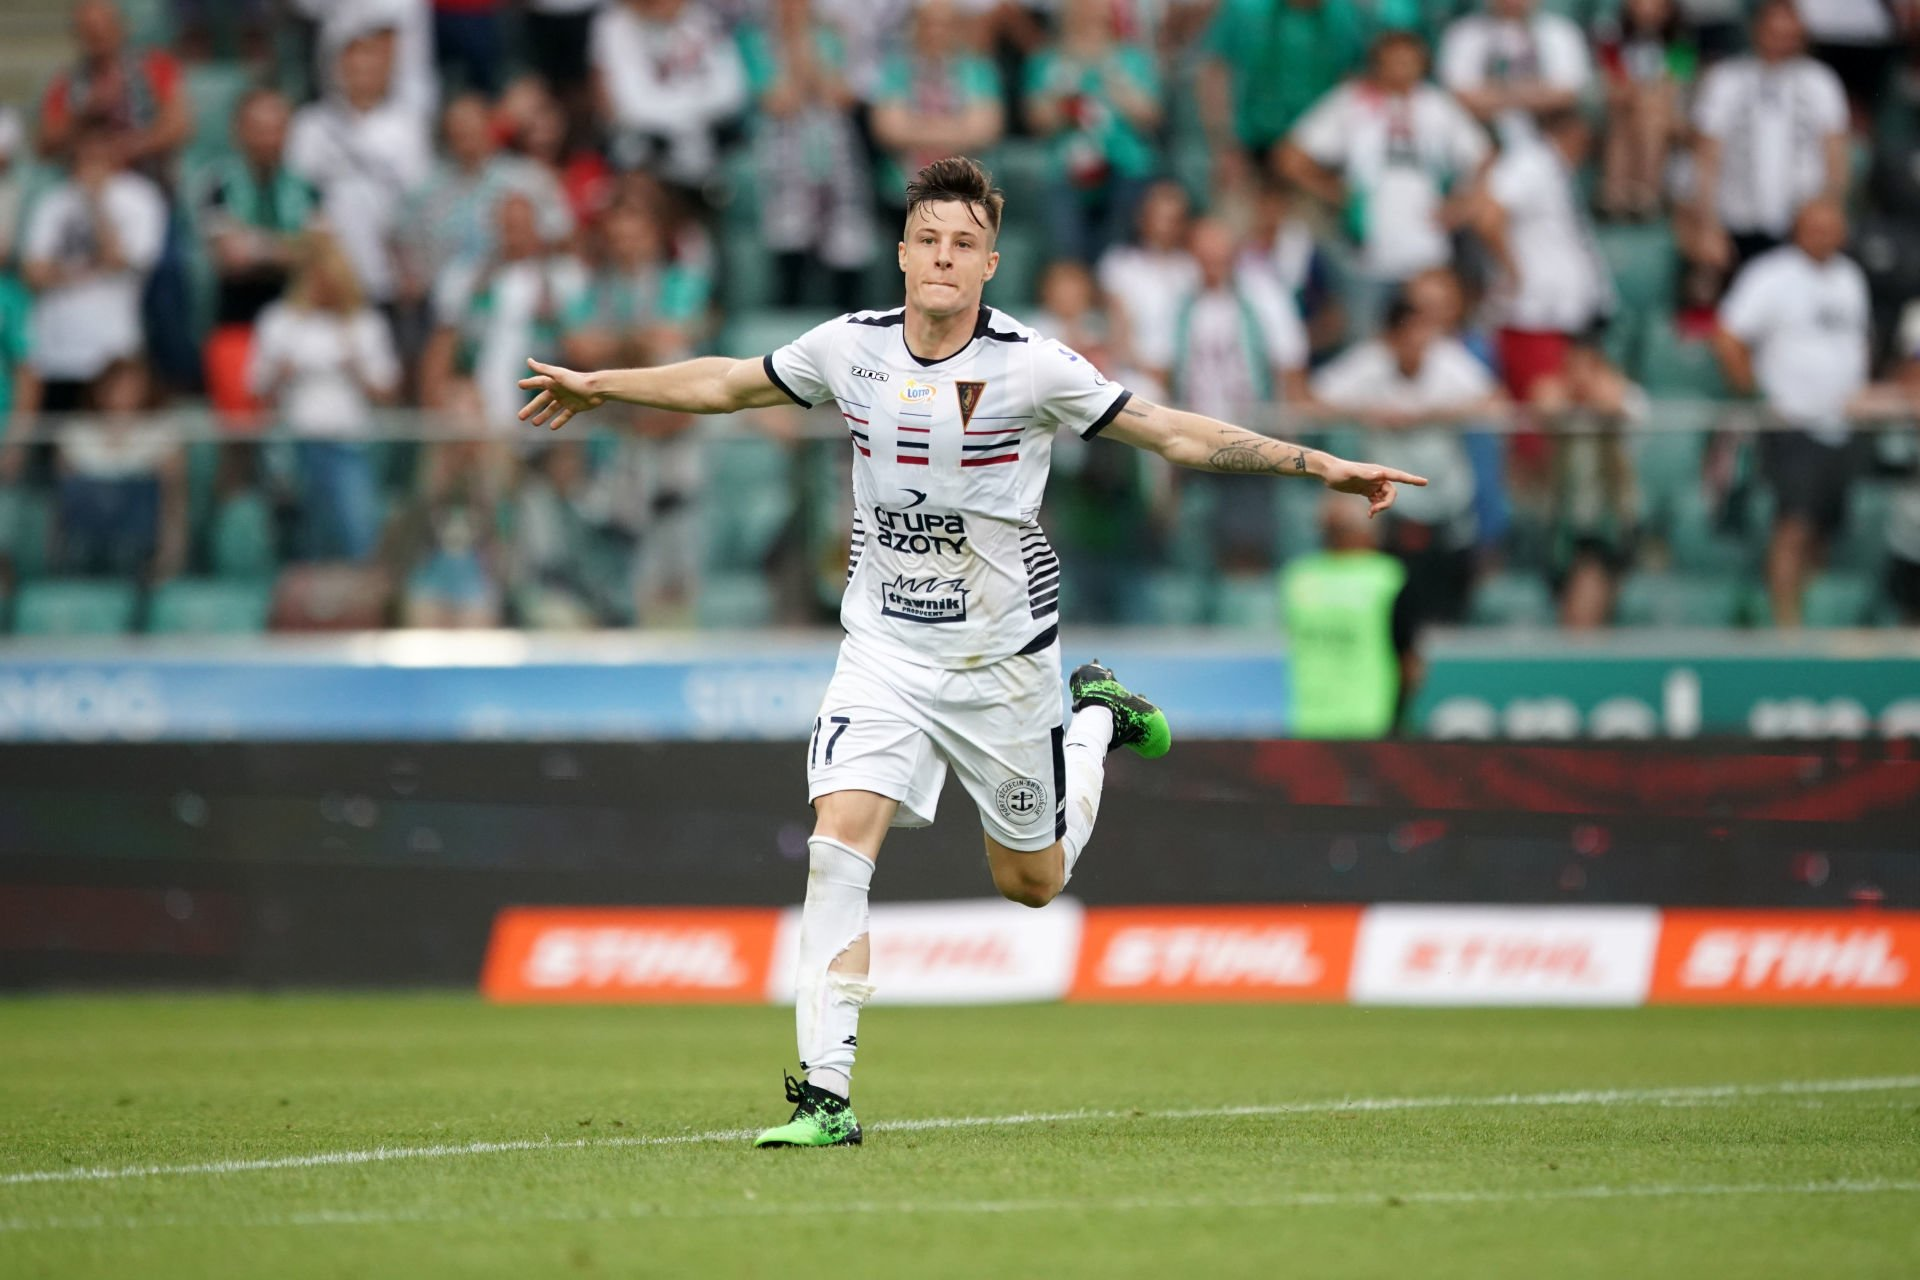 WARSZAWA 21.07.2019 MECZ 1. KOLEJKA PKO EKSTRAKLASA SEZON 2019/20 --- POLISH FOOTBALL TOP LEAGUE MATCH IN WARSAW: LEGIA WARSZAWA - POGON SZCZECIN ZVONIMIR KOZULJ FOT. PIOTR KUCZA/ 400mm.pl